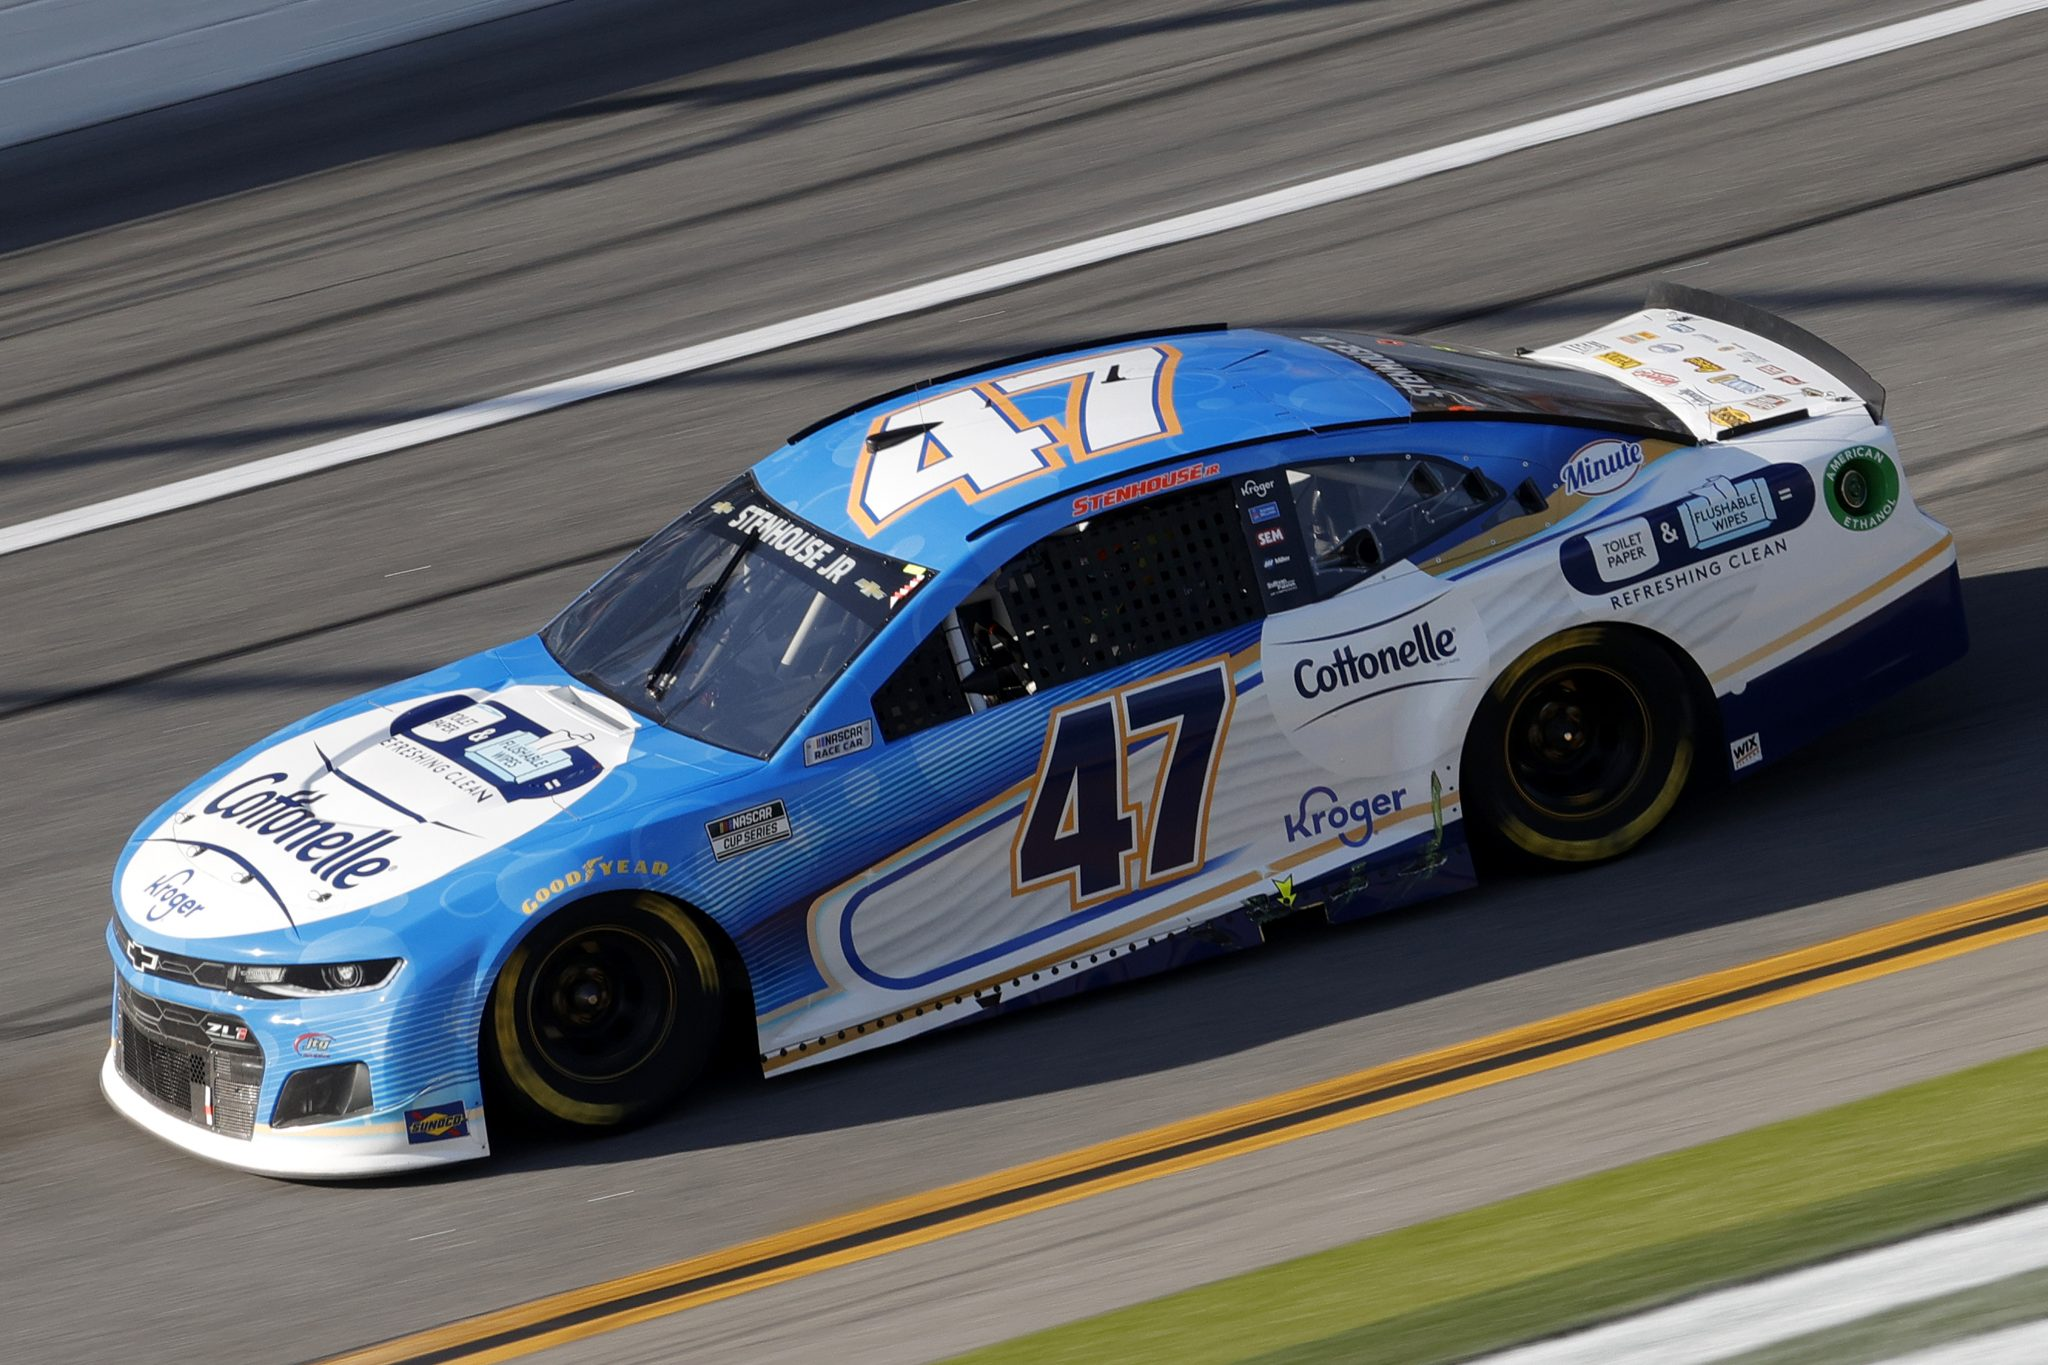 DAYTONA BEACH, FLORIDA - FEBRUARY 21: Ricky Stenhouse Jr., driver of the #47 Cottonelle Chevrolet, drives during the NASCAR Cup Series O'Reilly Auto Parts 253 at Daytona International Speedway on February 21, 2021 in Daytona Beach, Florida. (Photo by Chris Graythen/Getty Images) | Getty Images